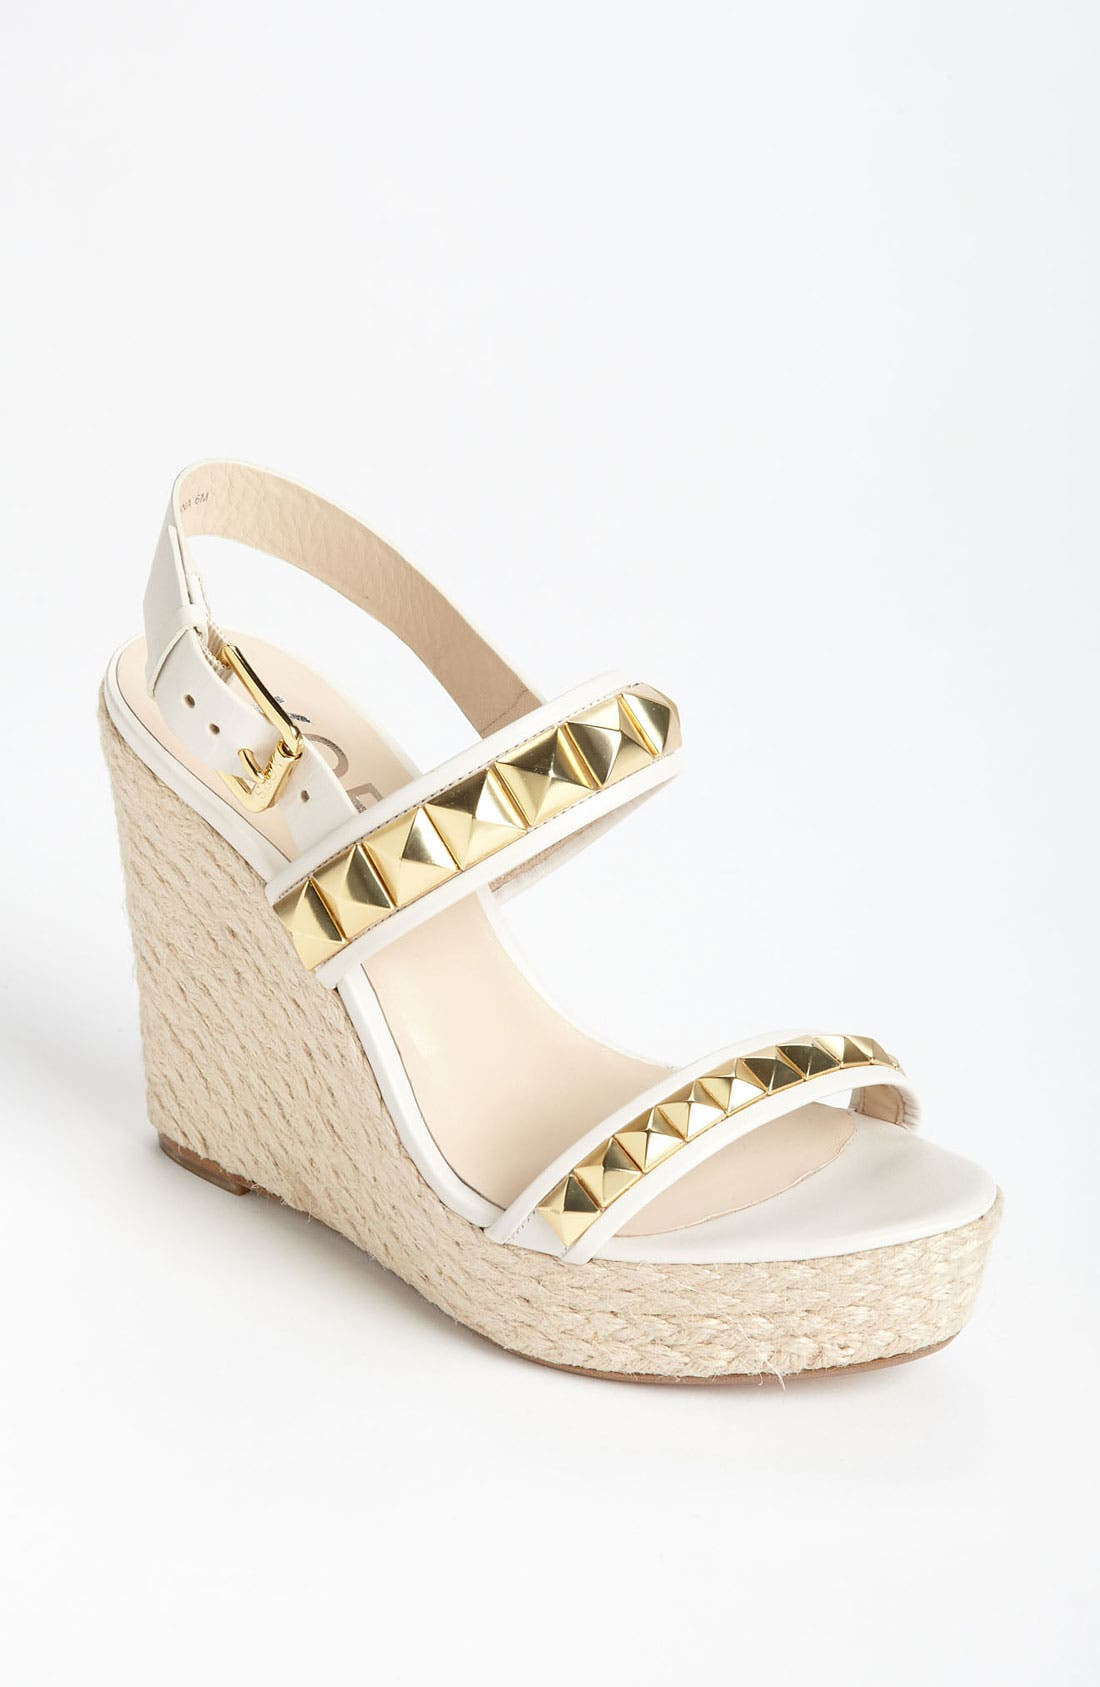 Alternate Image 1 Selected - KORS Michael Kors 'Corban' Wedge Sandal